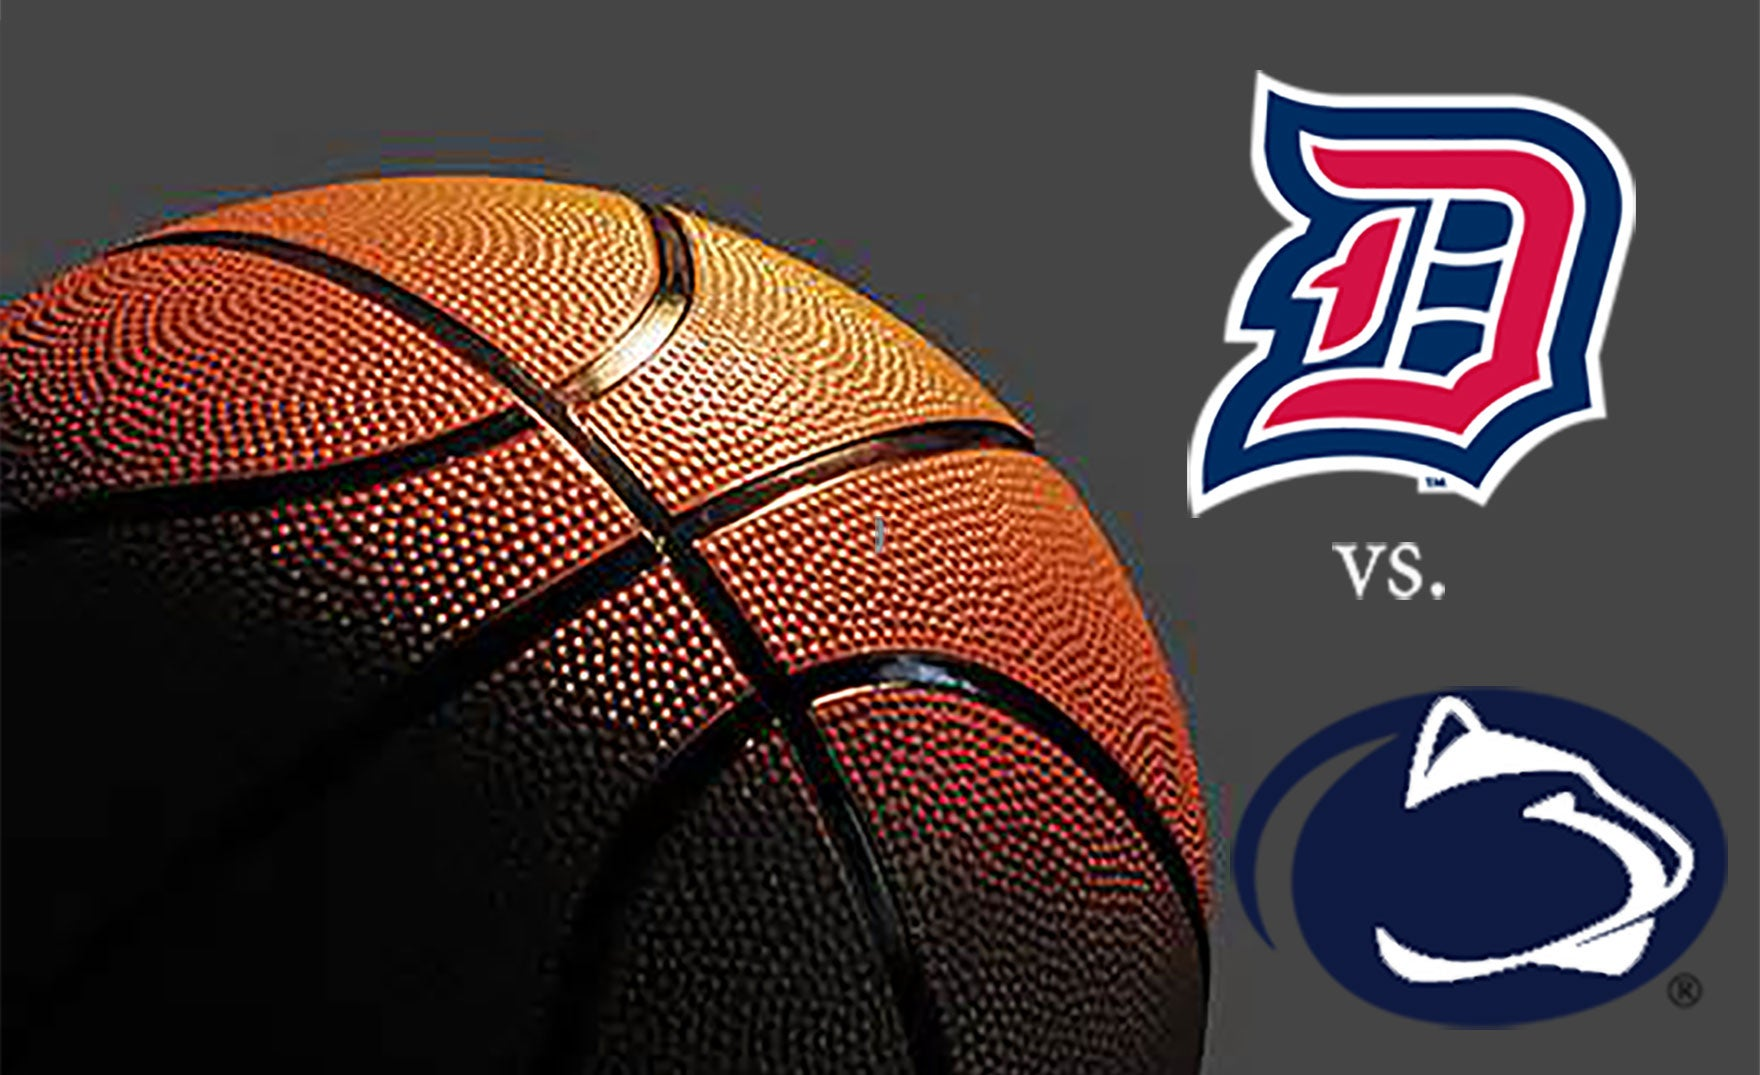 Duquesne University vs Penn State University Men's Basketball